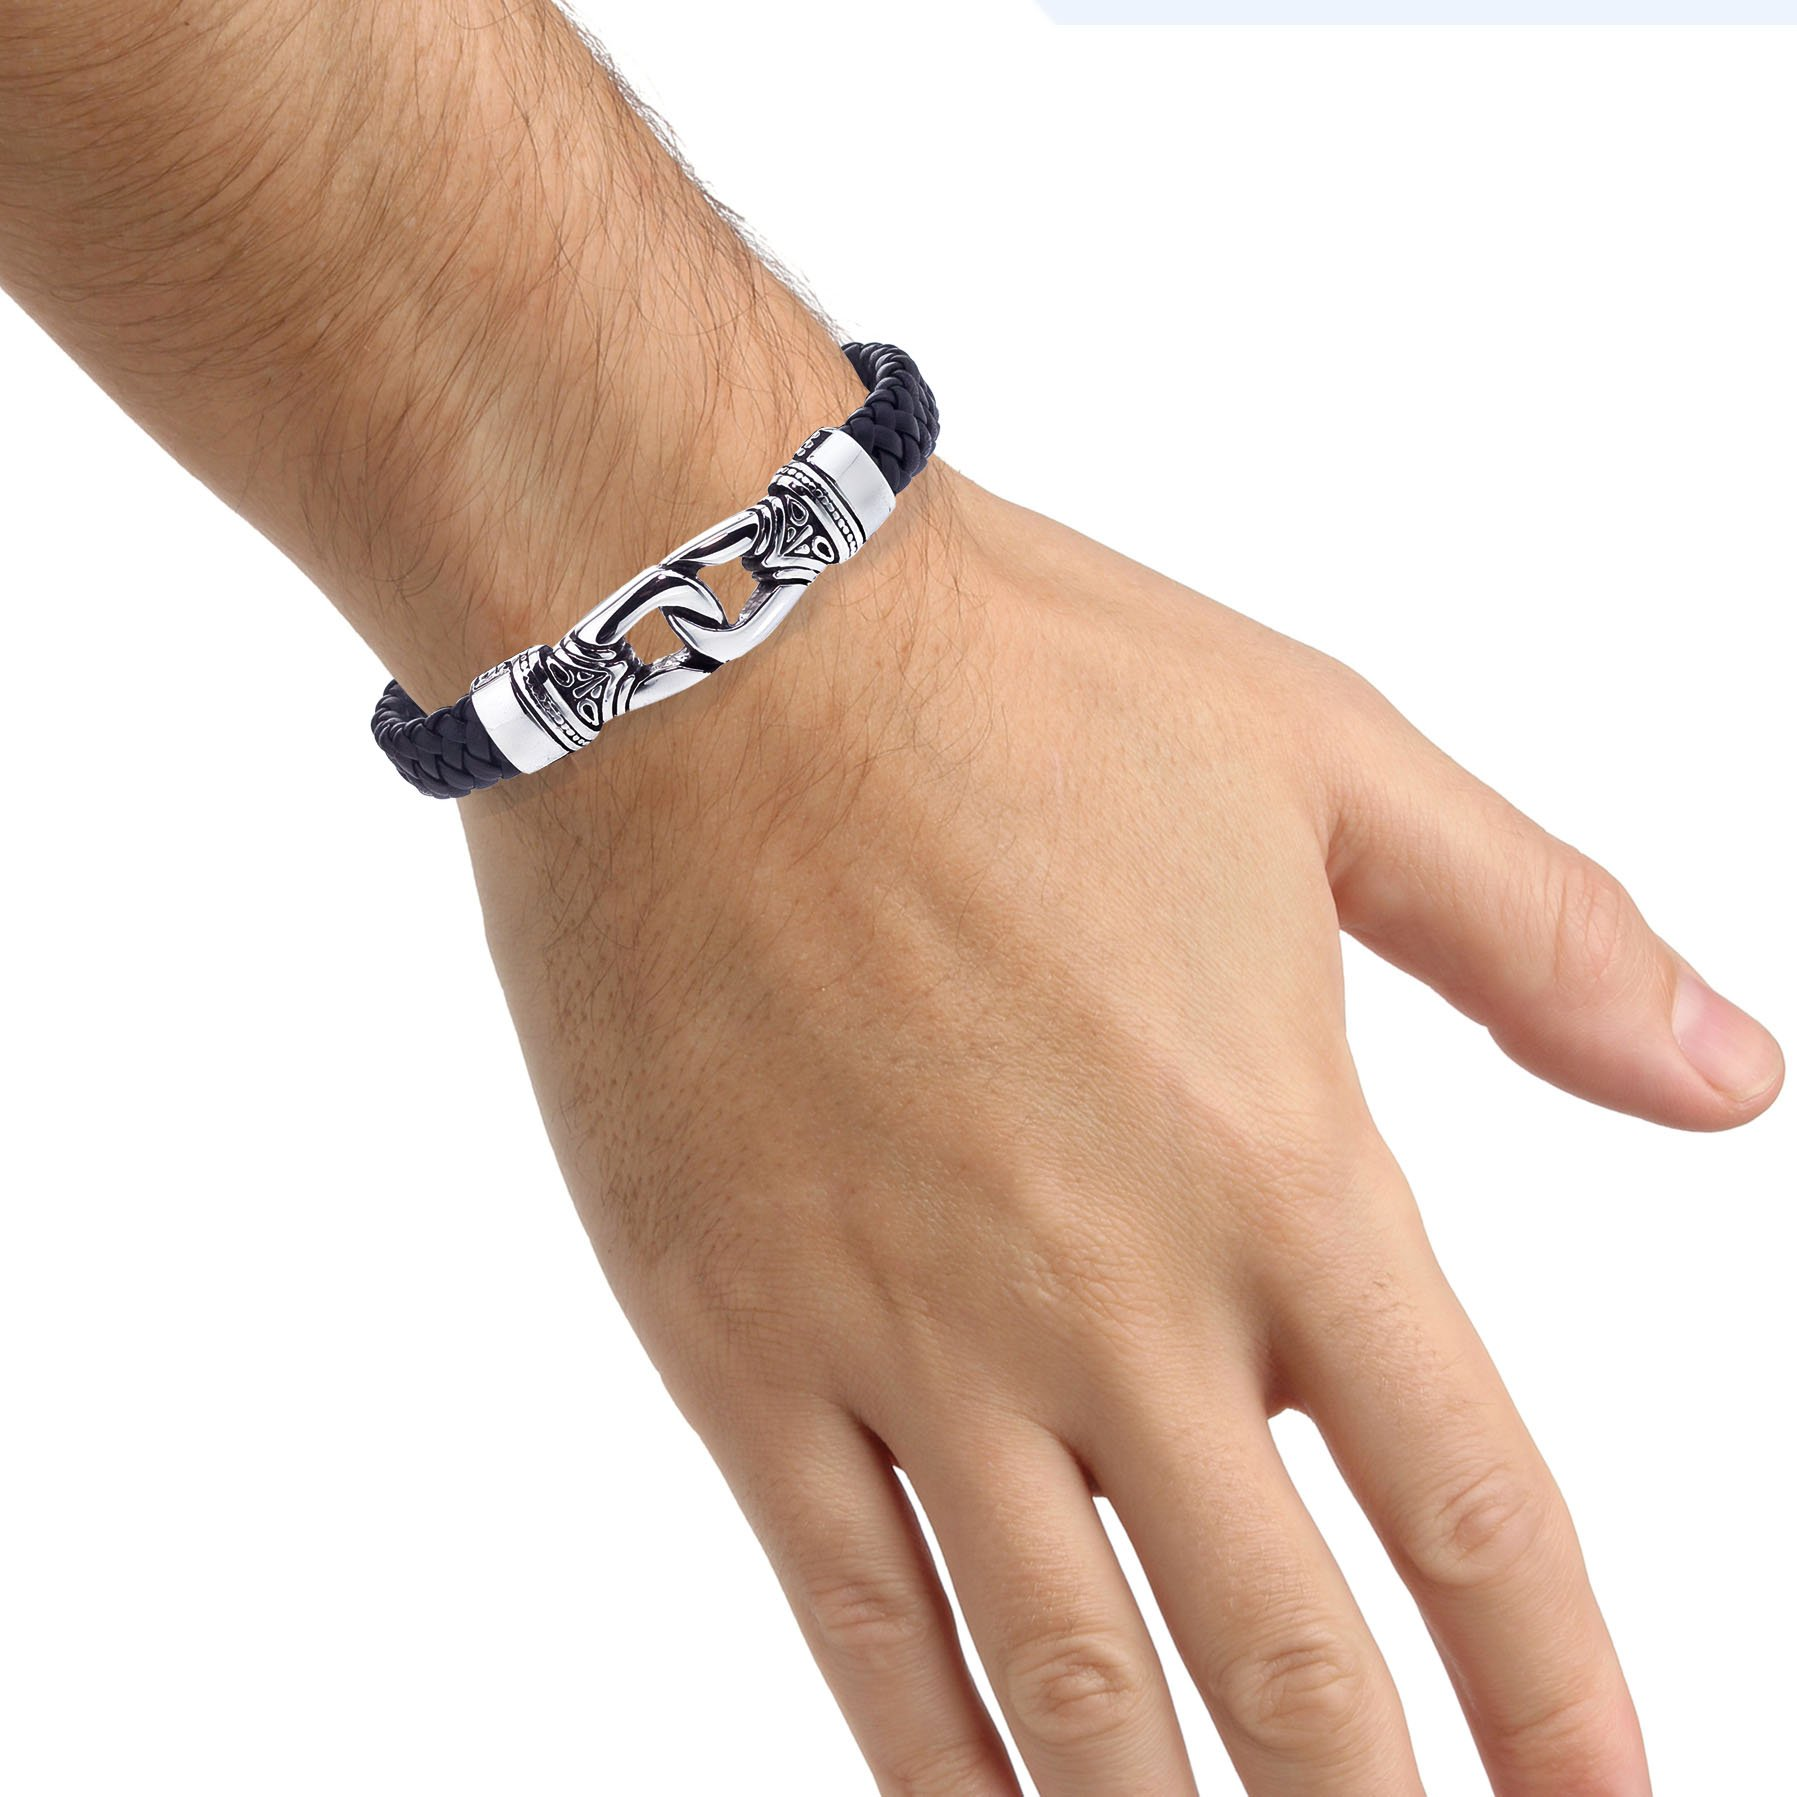 Antique Braided Black Leather Men's Bracelet Stainless Steel by AX Jewelry (Image #4)